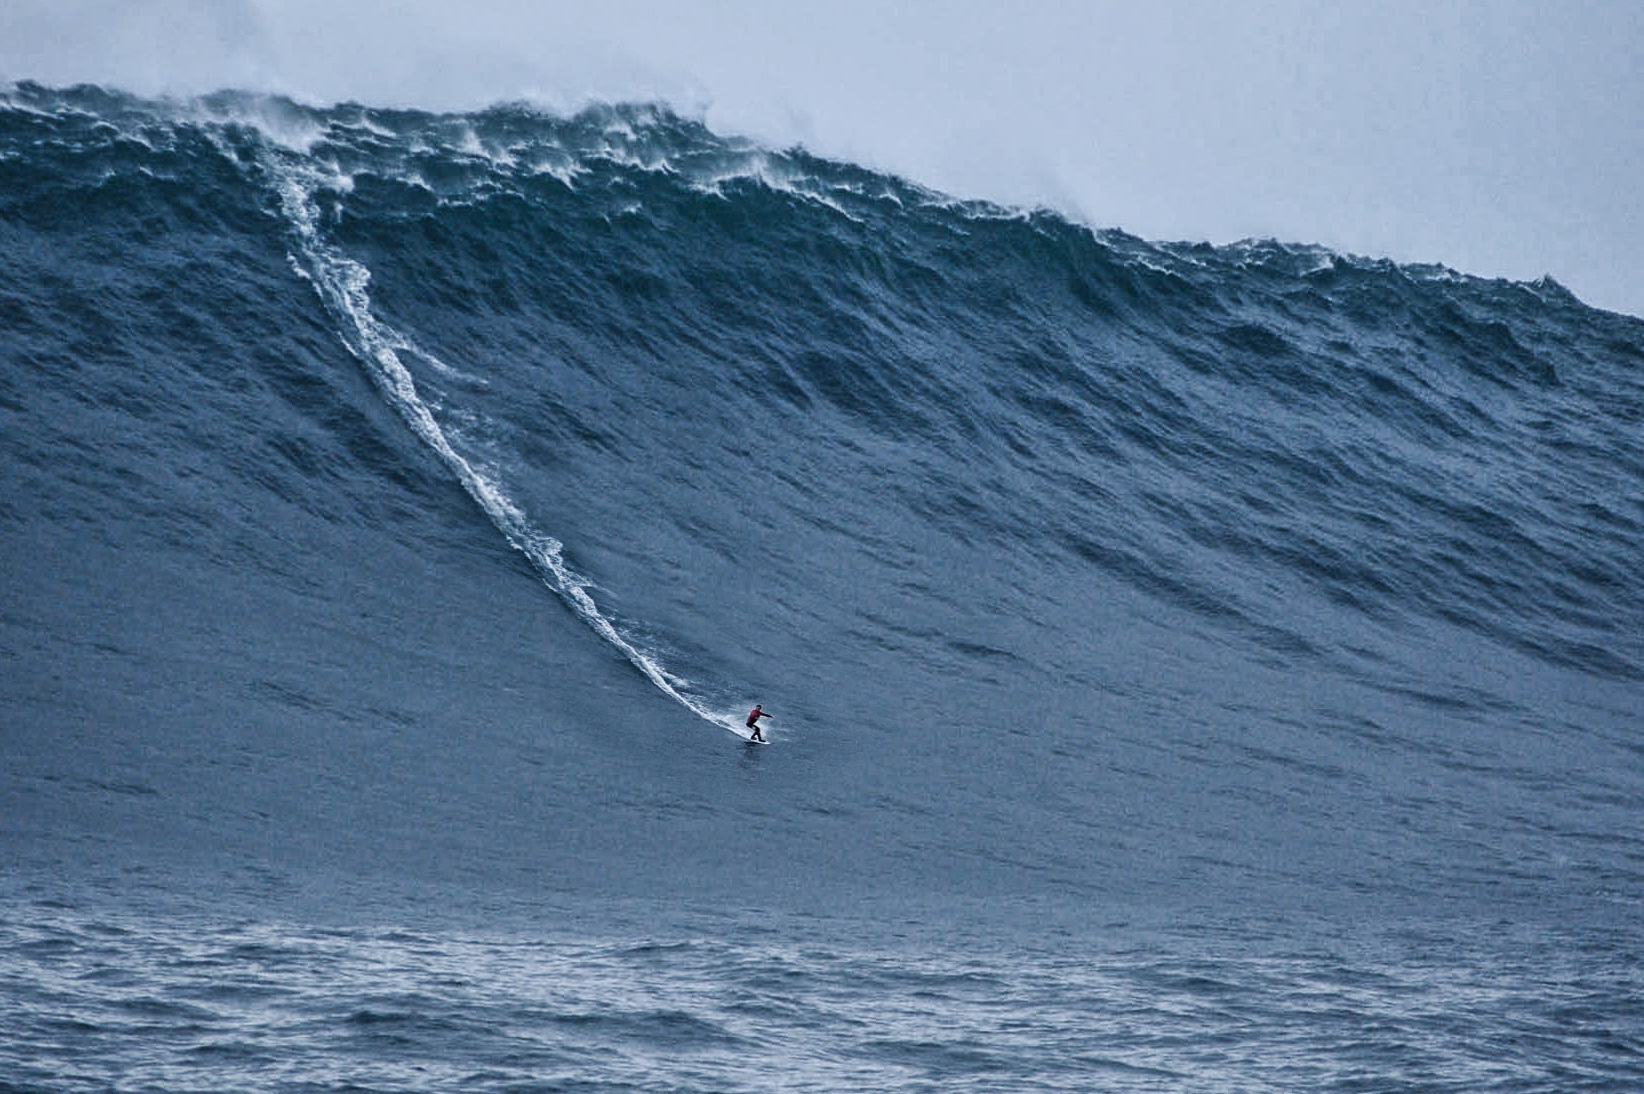 Managing social media is like surfing a giant wave